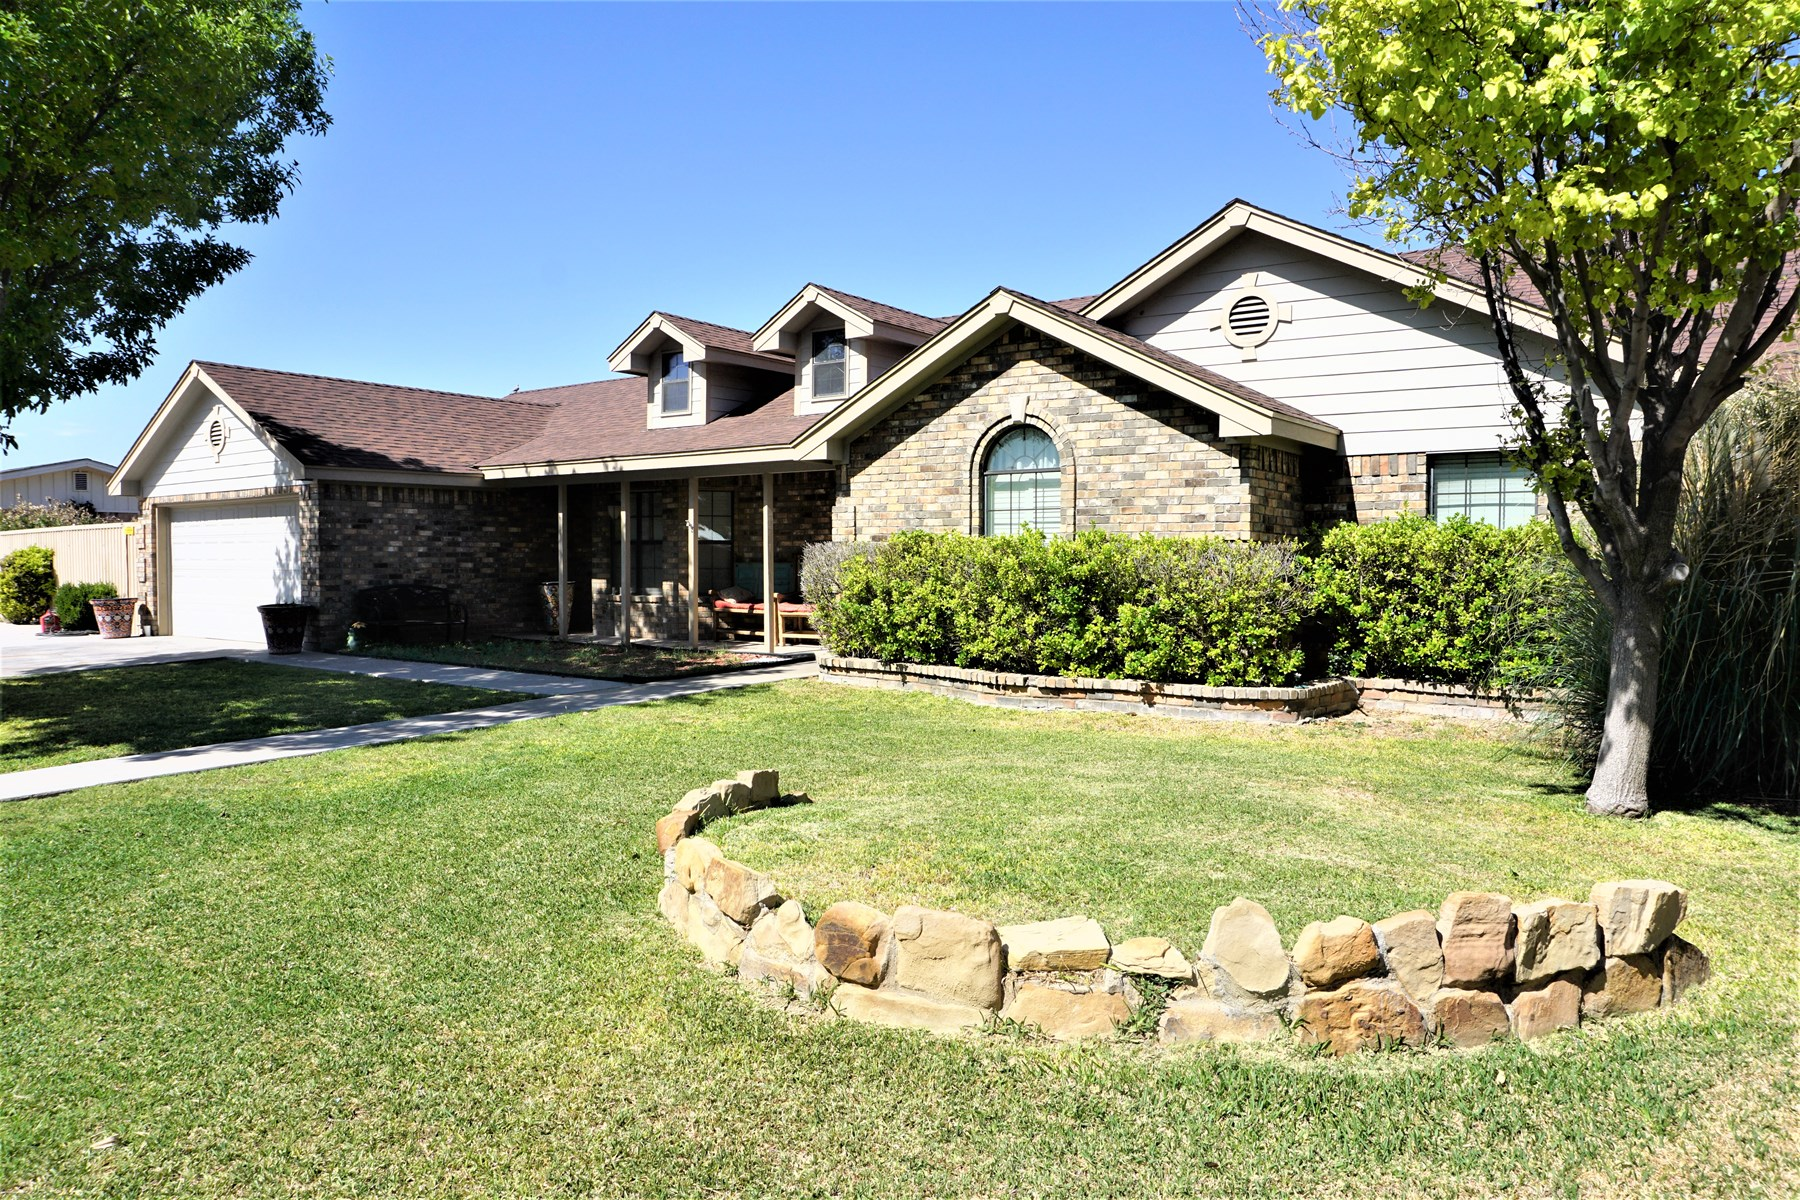 BRICK 4 BR 2 BA HOME FOR SALE IN FORT STOCKTON, TEXAS